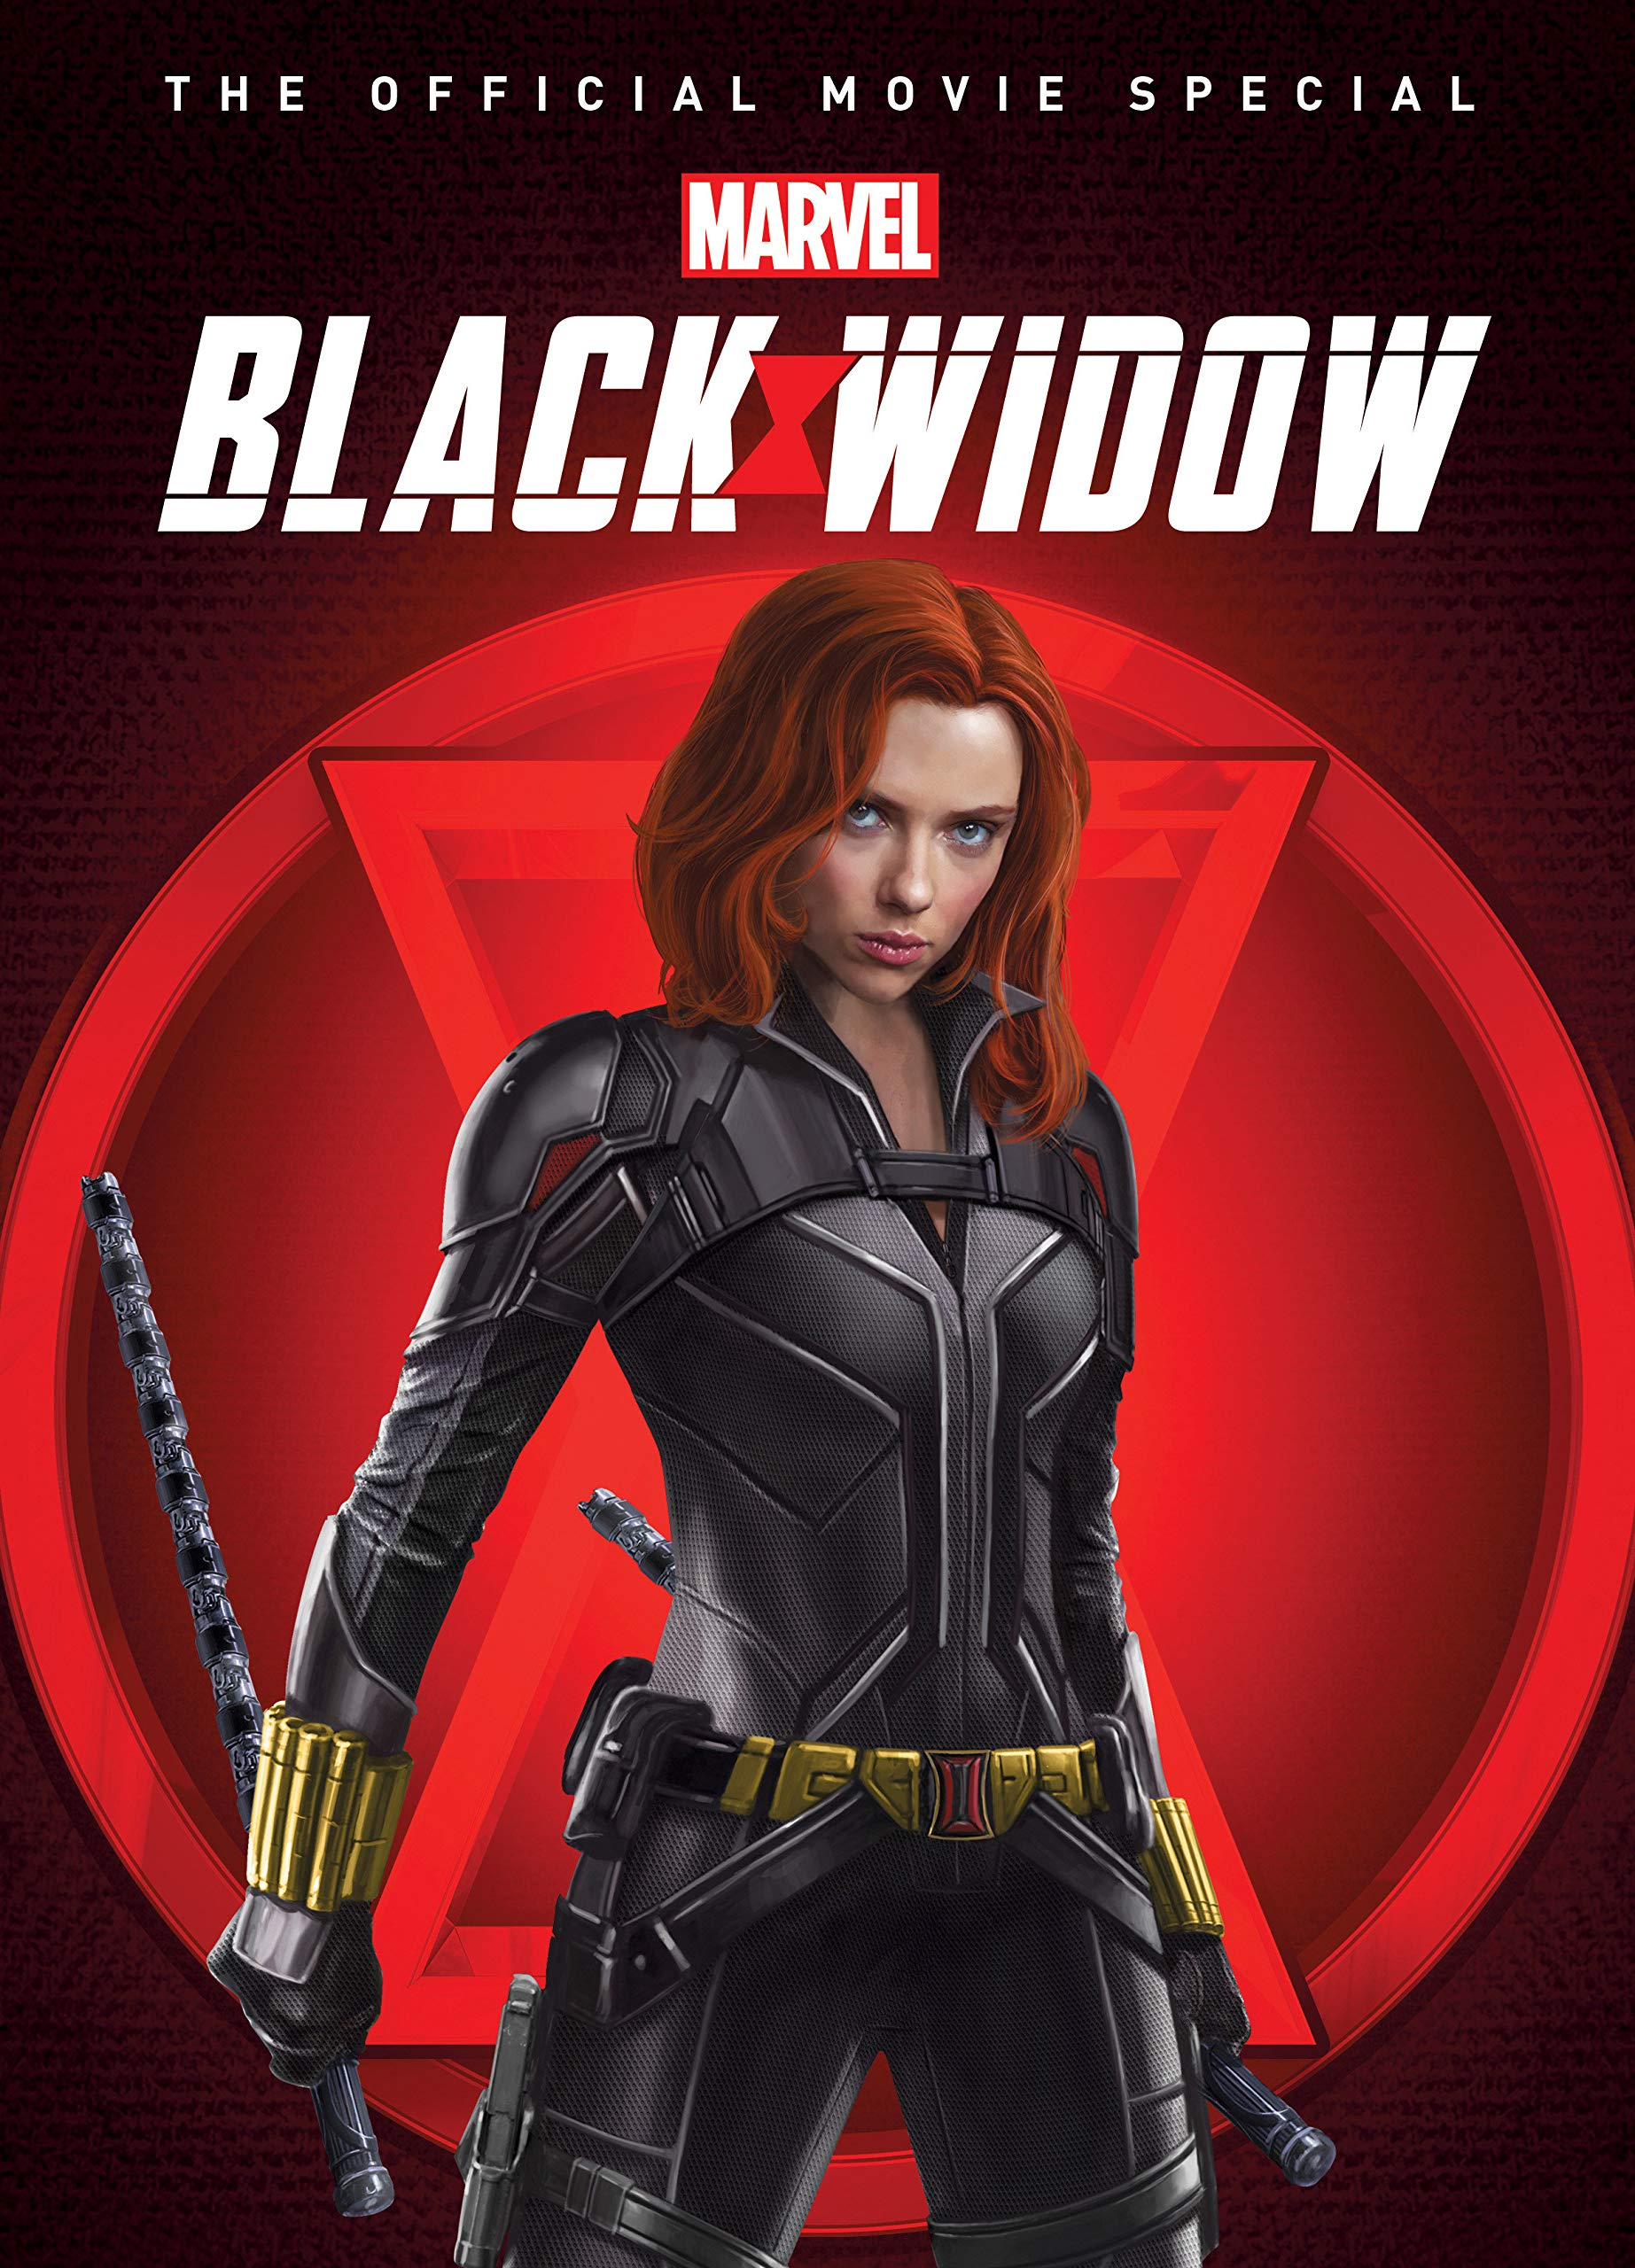 Buy Marvel's Black Widow: The Official Movie Special Book (Black Widow  Official Movie Special) Book Online at Low Prices in India | Marvel's Black  Widow: The Official Movie Special Book (Black Widow